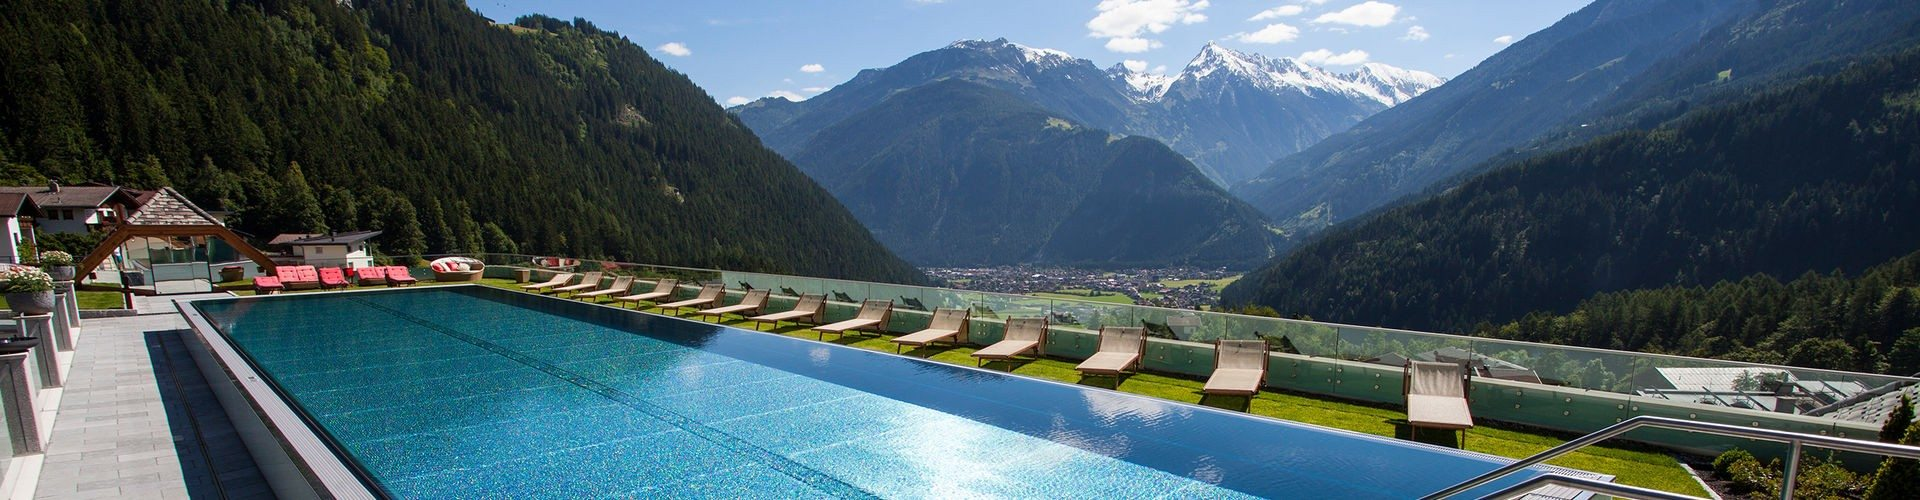 Finkenberg Austria  city photo : STOCK Resort Finkenberg, Austria Infinity Pools